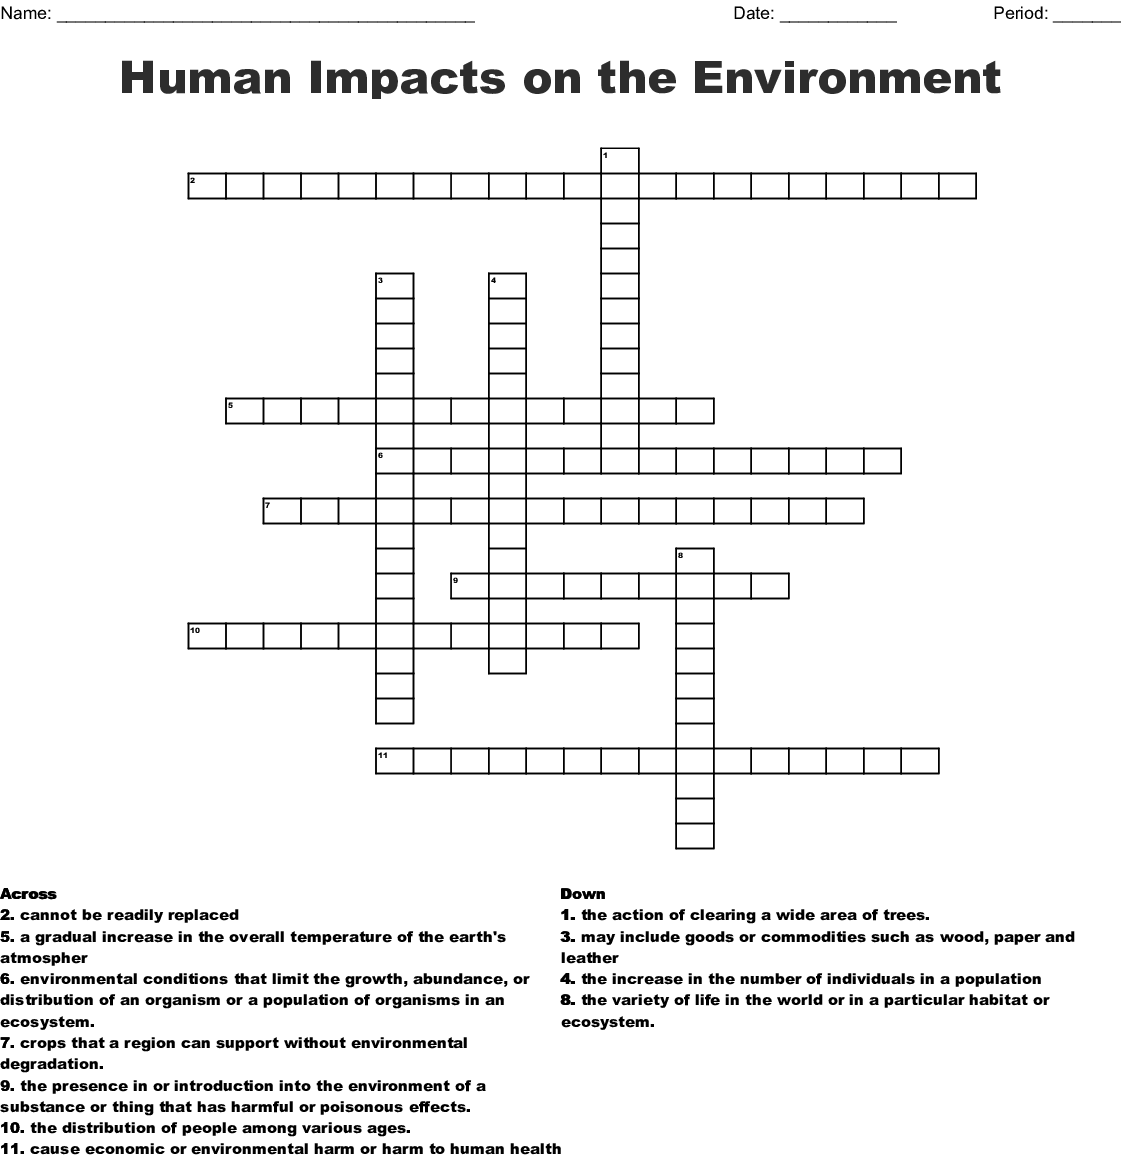 Human Impacts On The Environment Crossword Wordmint